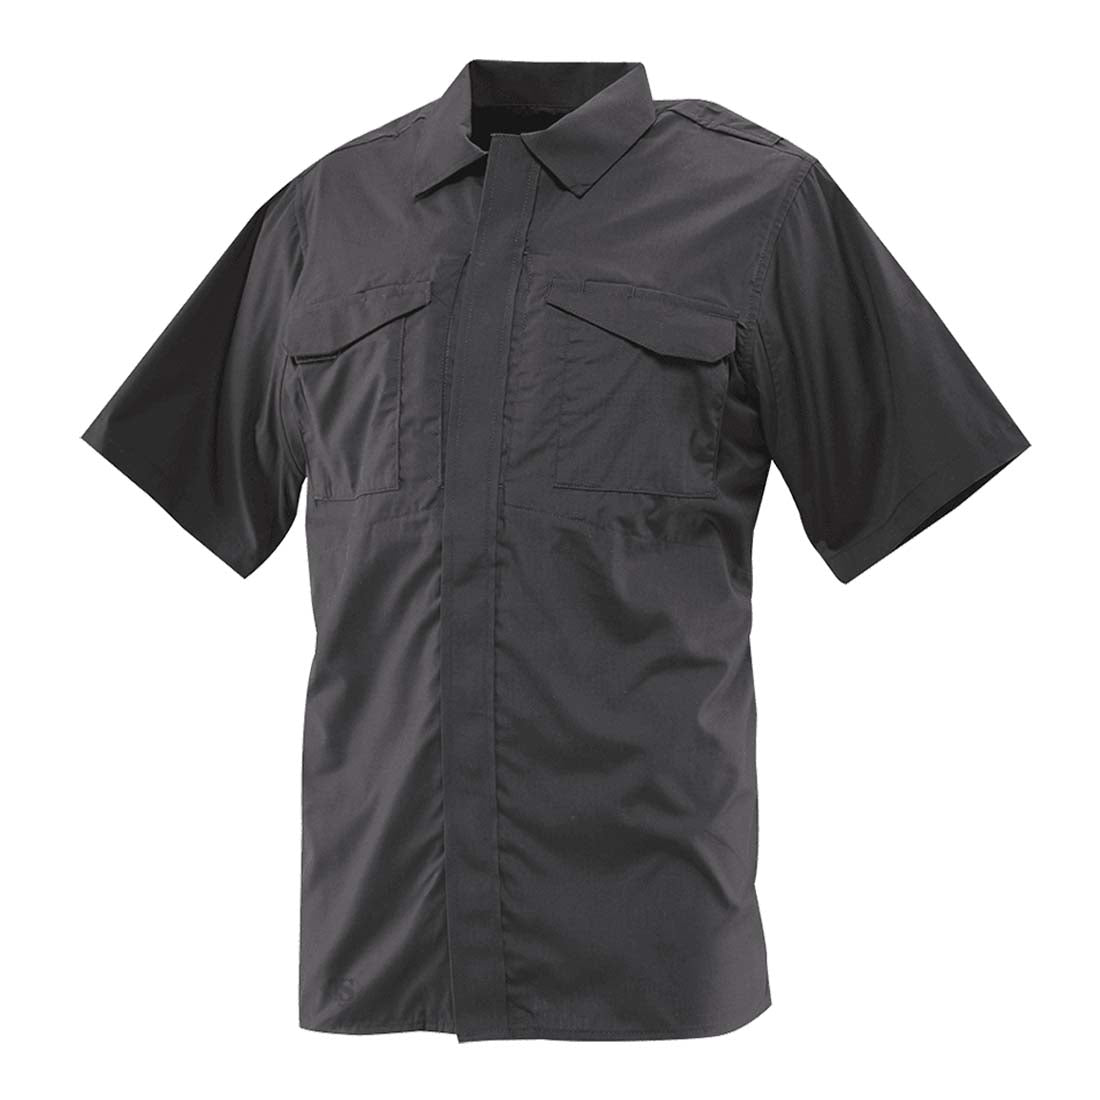 Tru-Spec 24/7 Series Men's Ultralight Short Sleeve Uniform Shirt